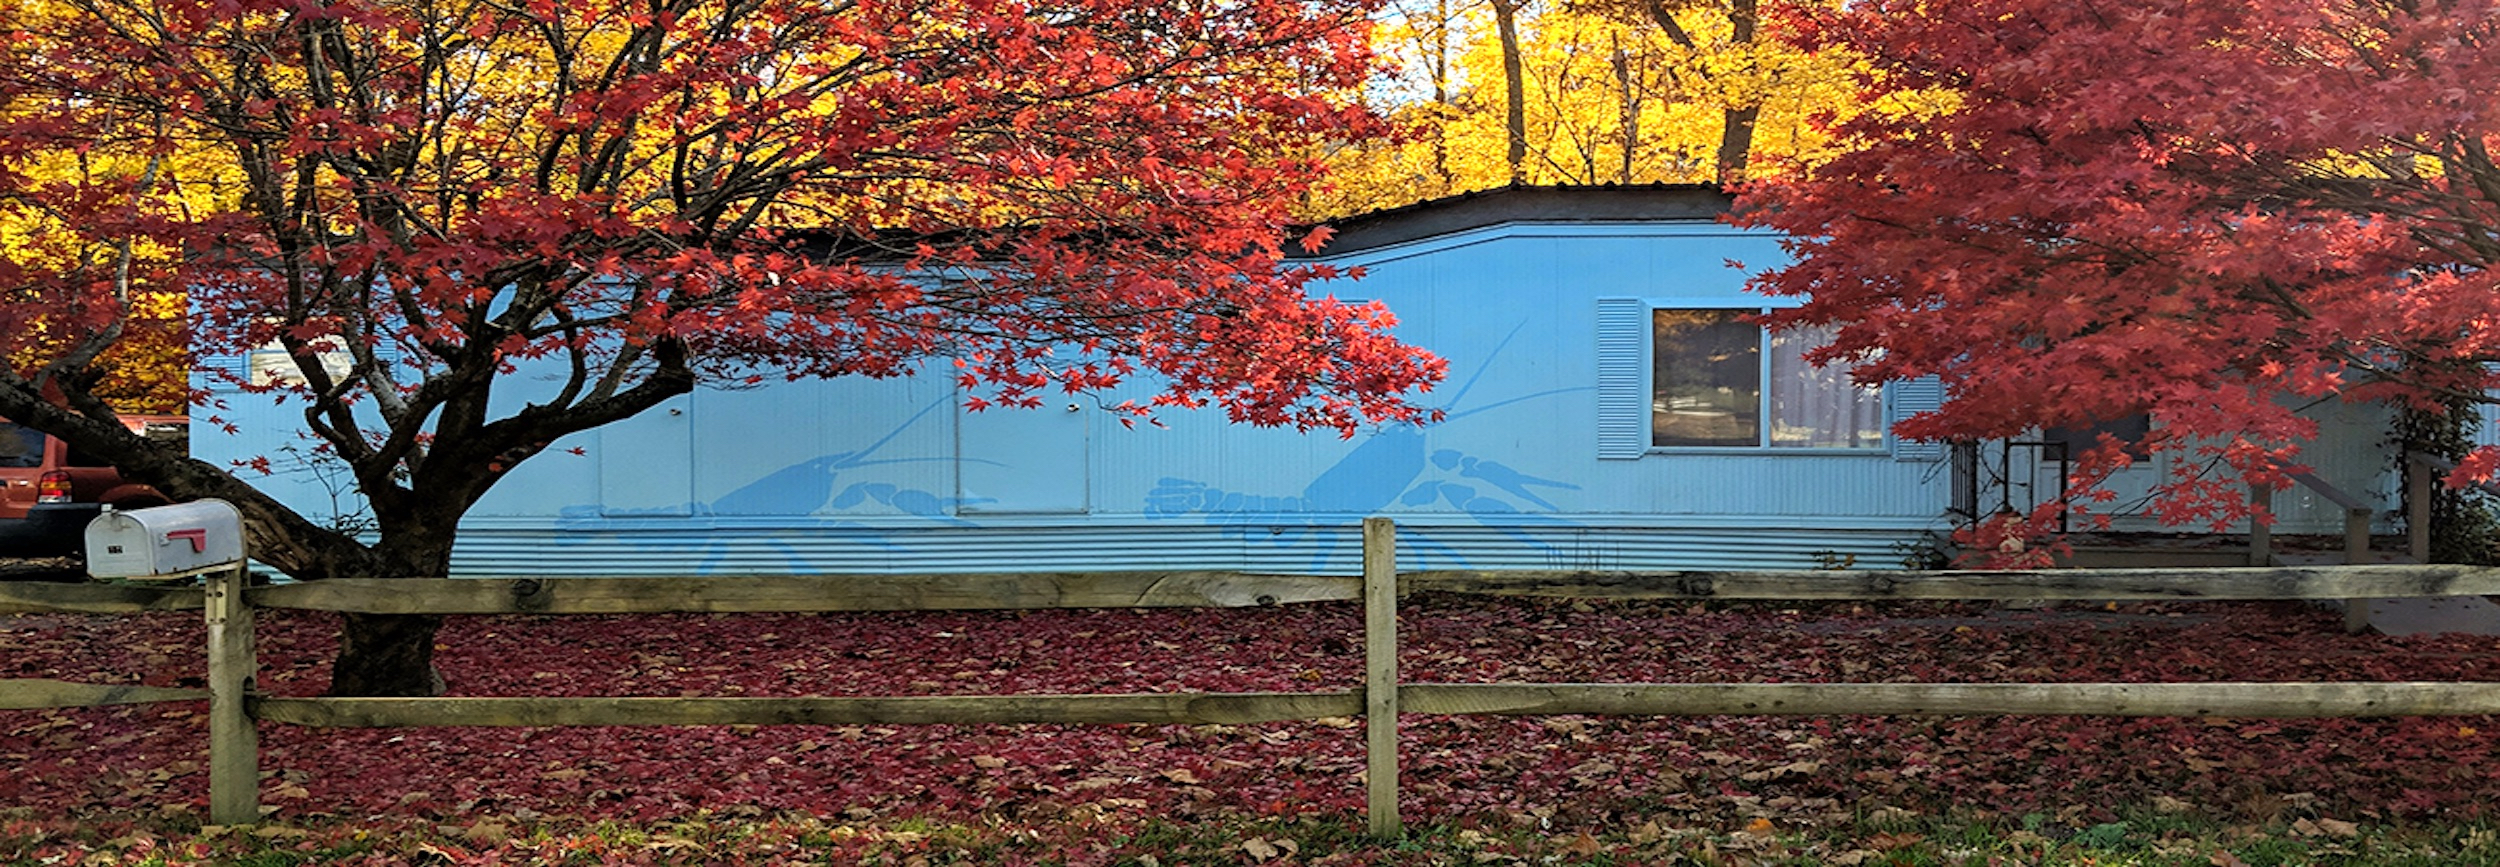 A mobile home trailer painted blue with murals of crawdads.